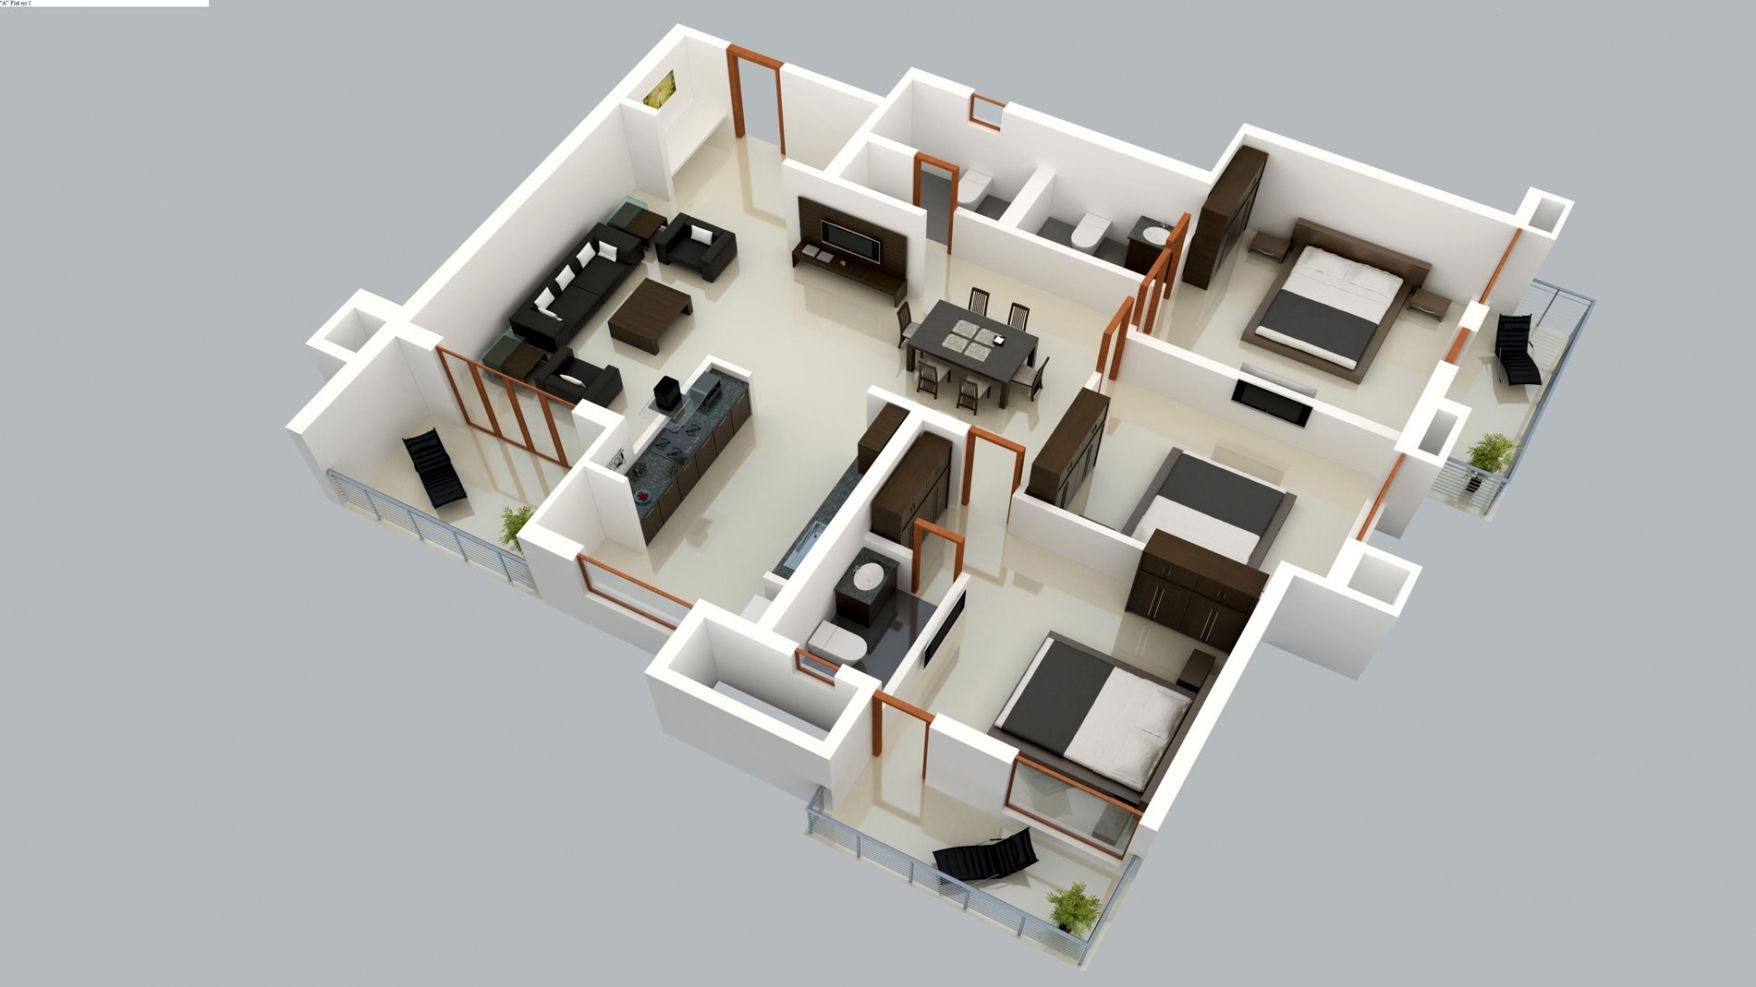 Lovely Diy House Design Software Check More At Http://www.jnnsysy.